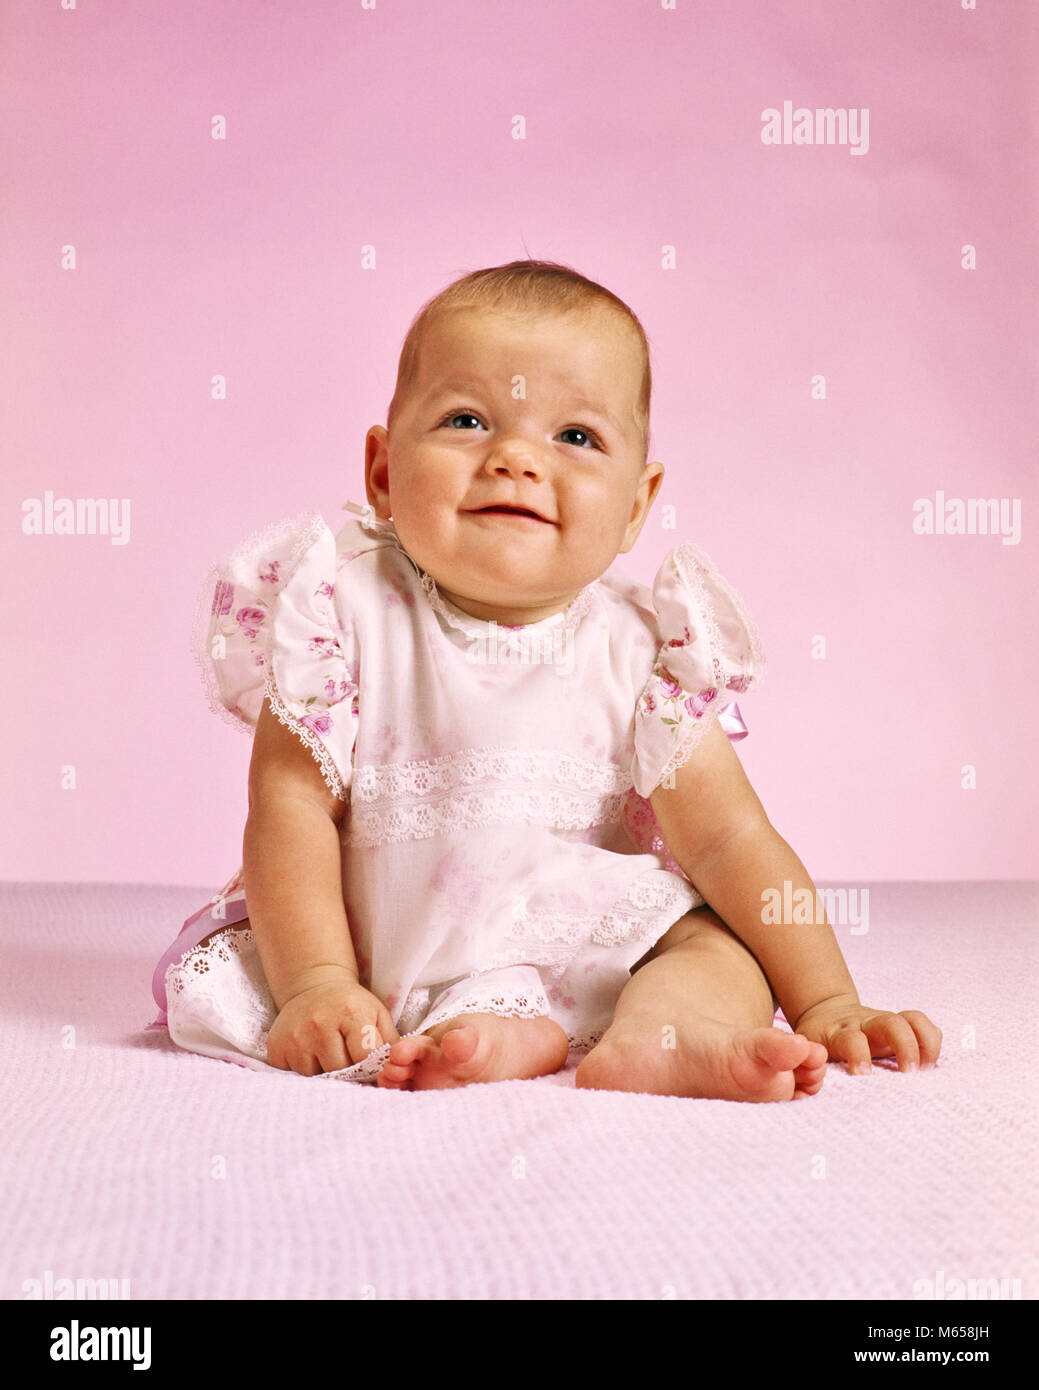 1970s BABY GIRL IN PINK SMILING - kb10545 HAR001 HARS 6-12 MONTHS JUVENILES BABY GIRL CAUCASIAN ETHNICITY LOOKING - Stock Image